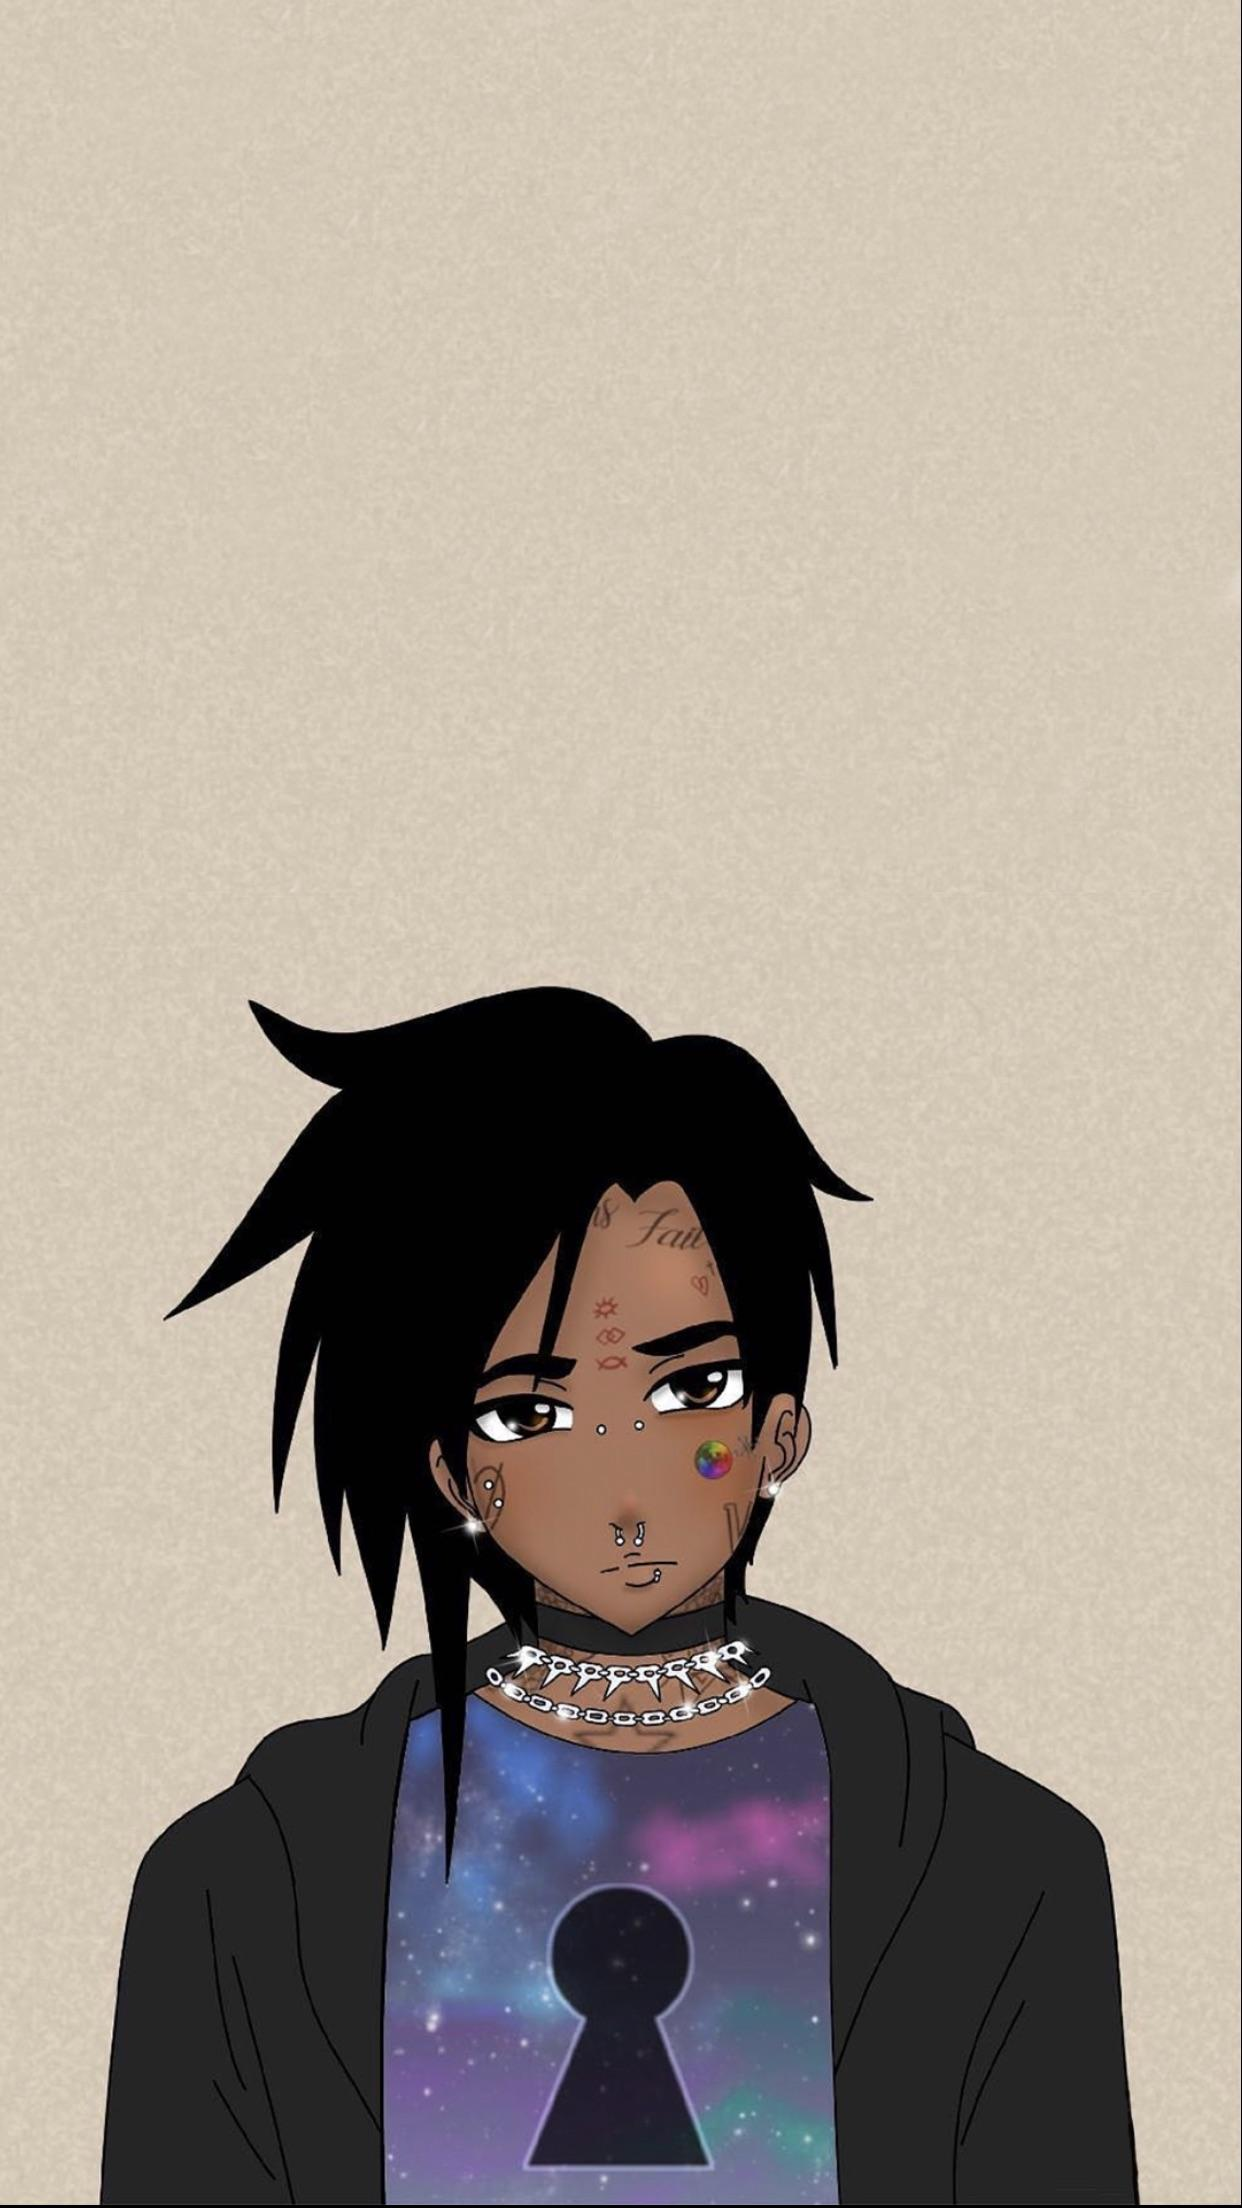 Luv Lil Uzi Wallpapers On Wallpaperdog Tons of awesome lil uzi vert wallpapers to download for free. luv lil uzi wallpapers on wallpaperdog